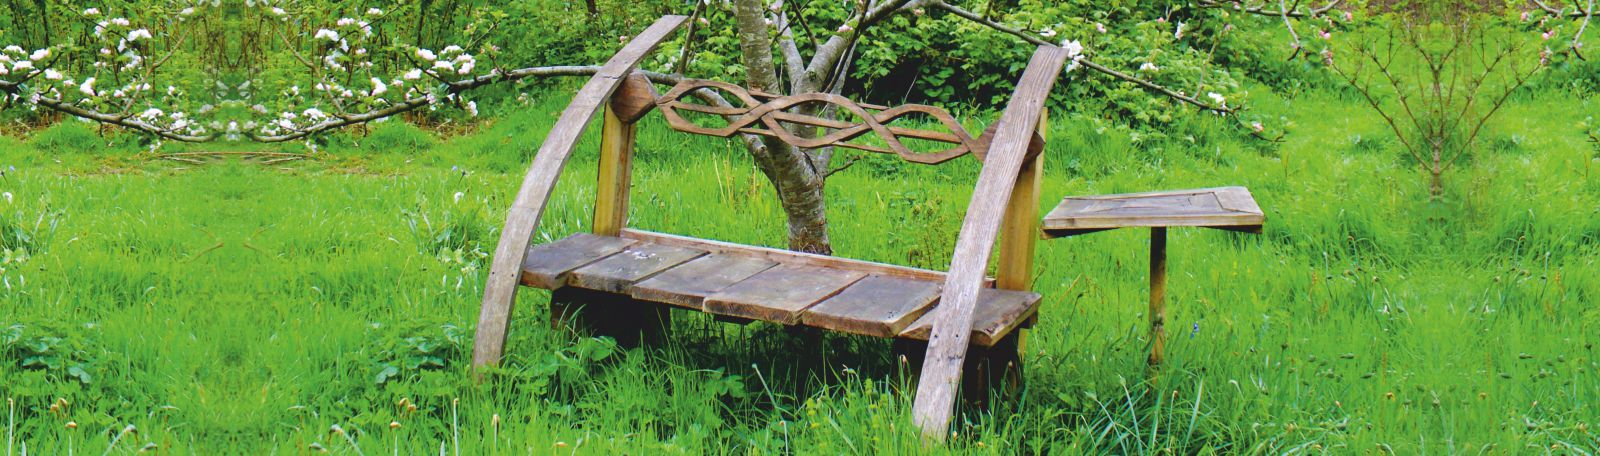 Handmade Bespoke Garden Furniture in Brixham Devon